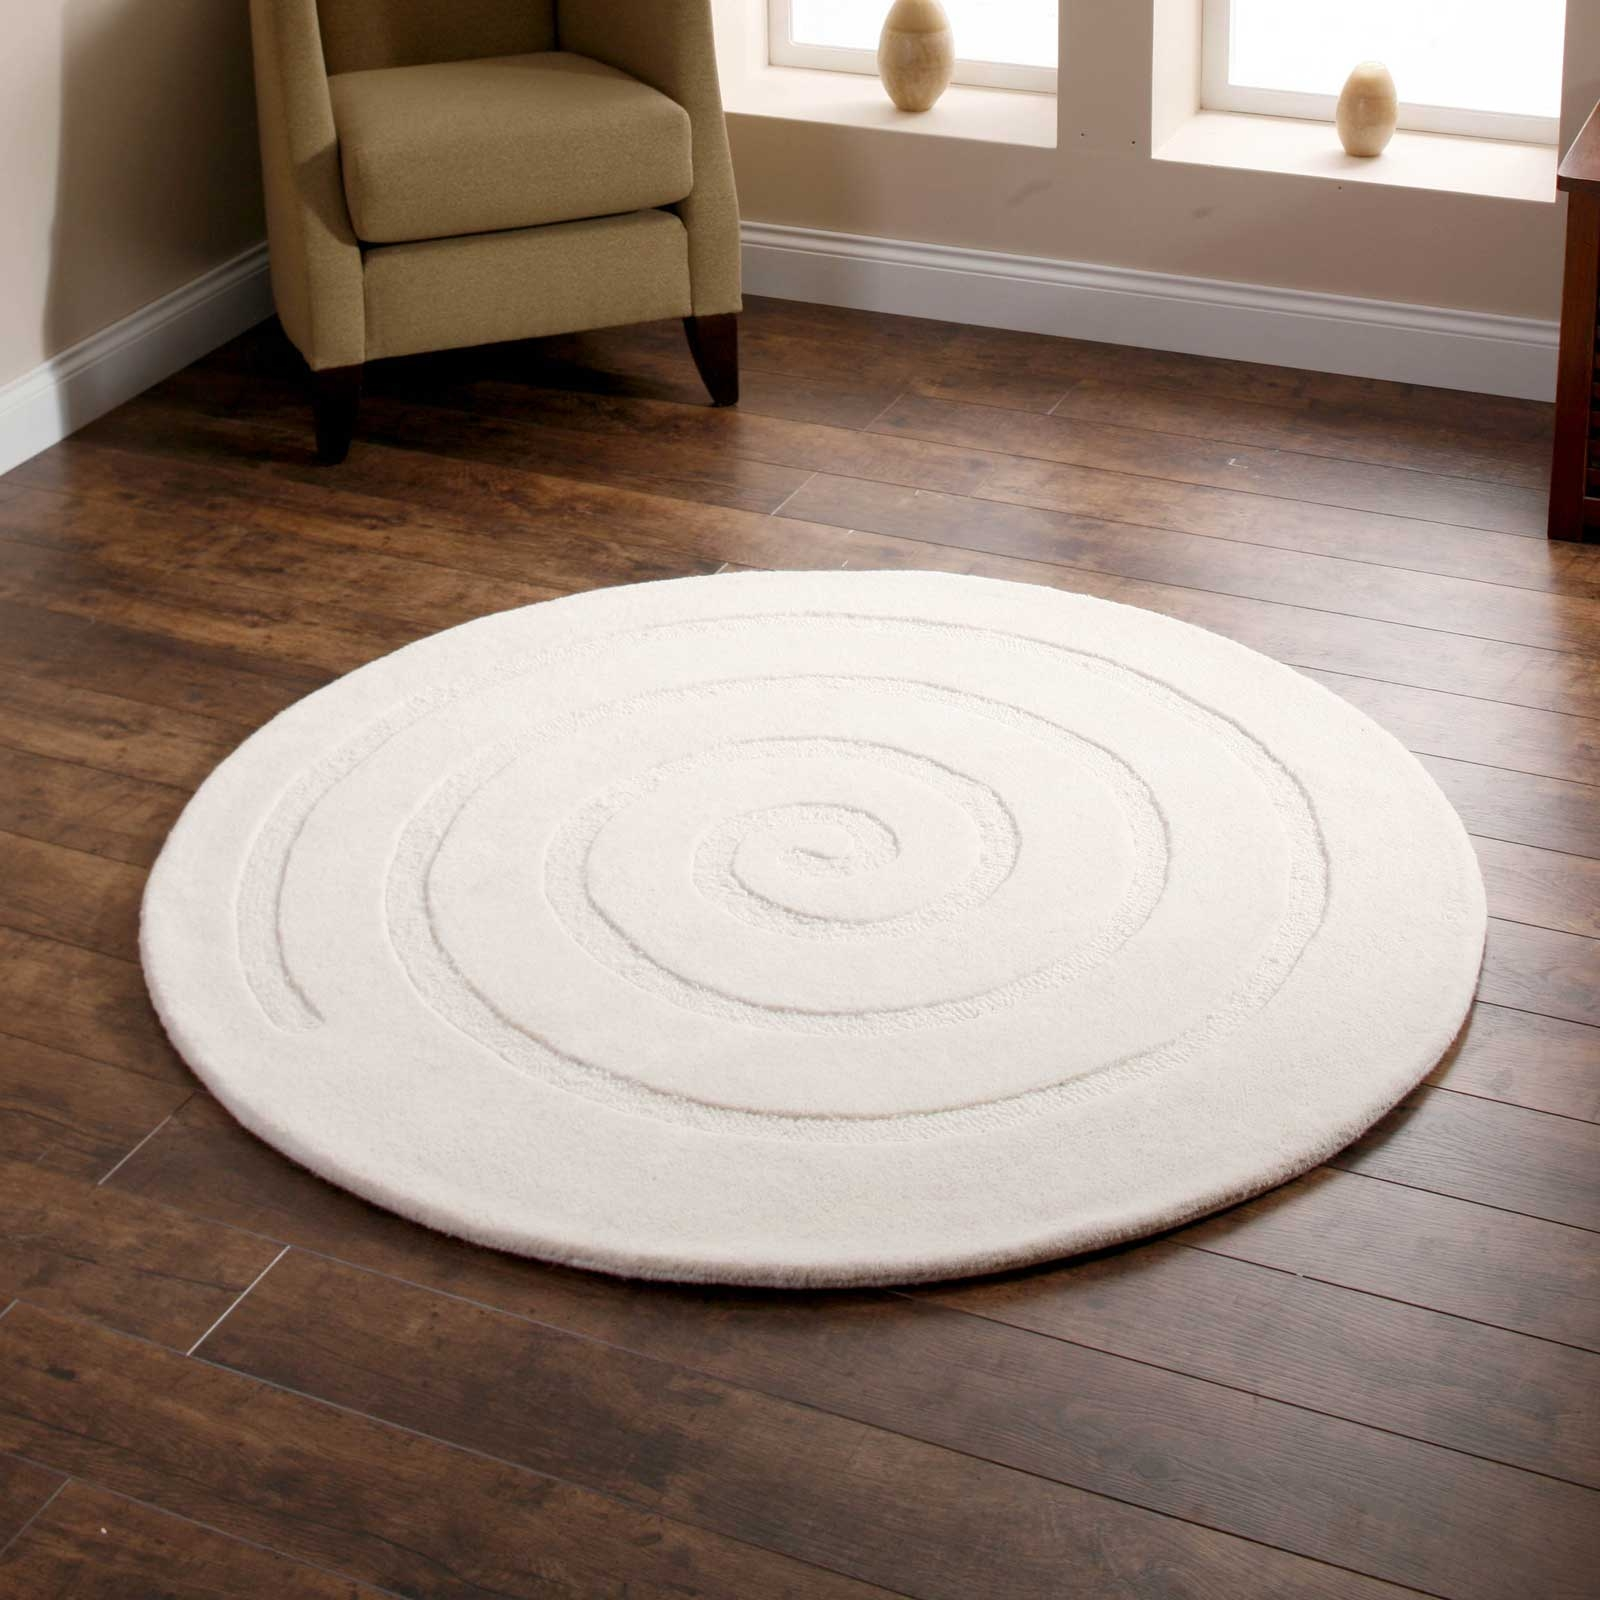 Circle Rugs Round Braided Rugs Cheap Home Design Ideas Circle Pertaining To Circular Rugs (View 9 of 15)